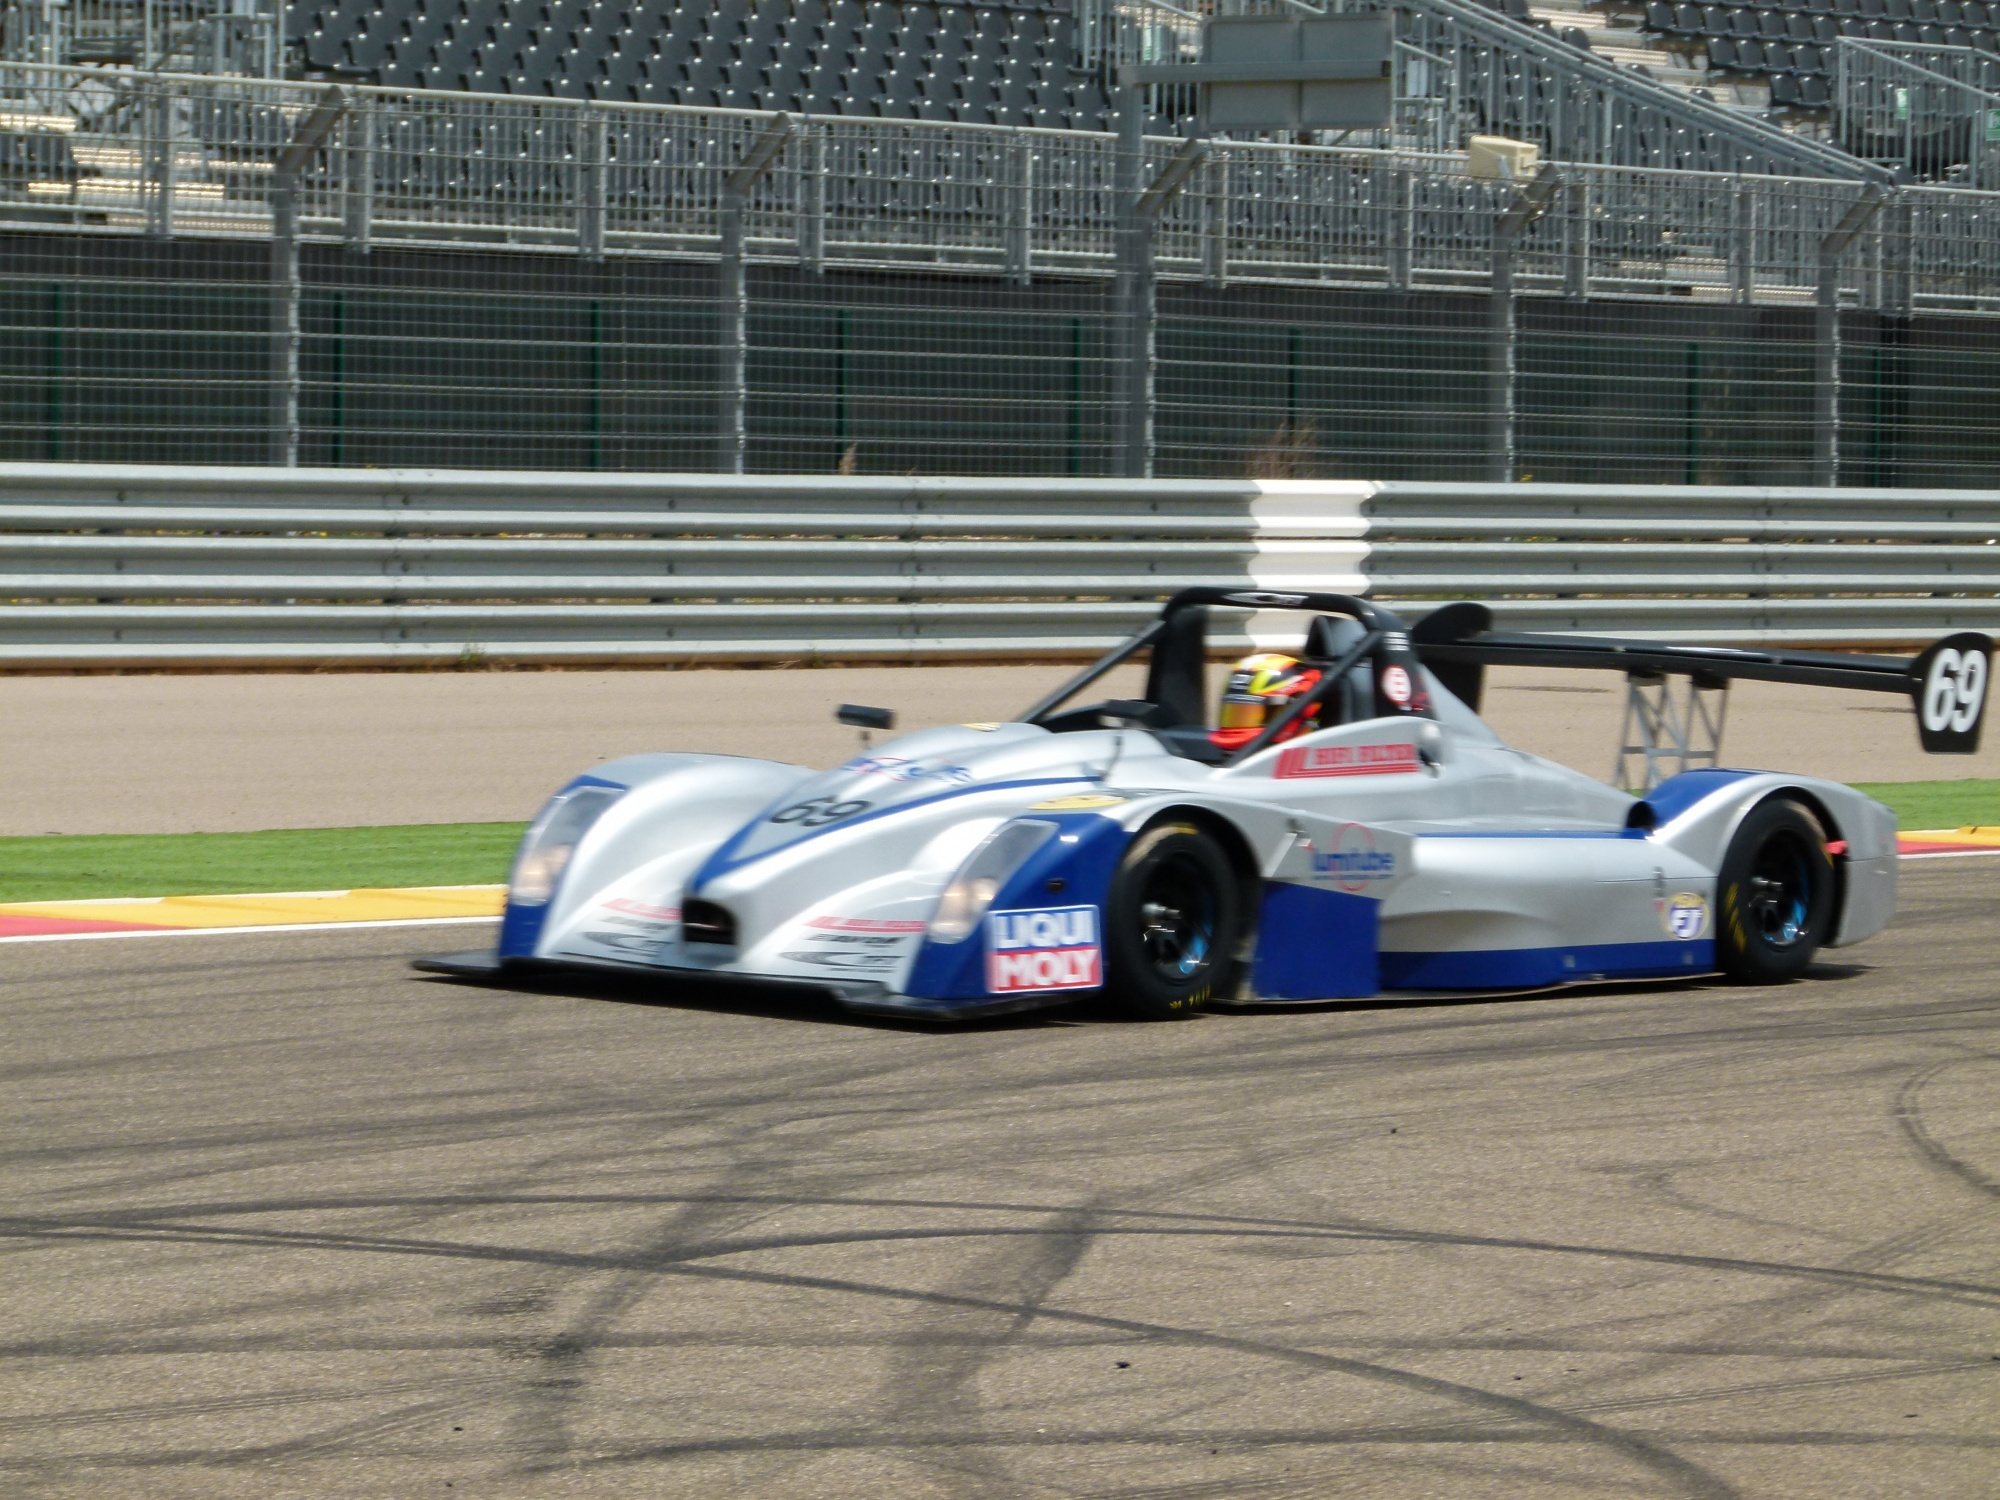 SPEED EUROSERIES AND VDEV ENDURANCE CHAMPIONSHIP – TEAM TFT – NORMA M20FC